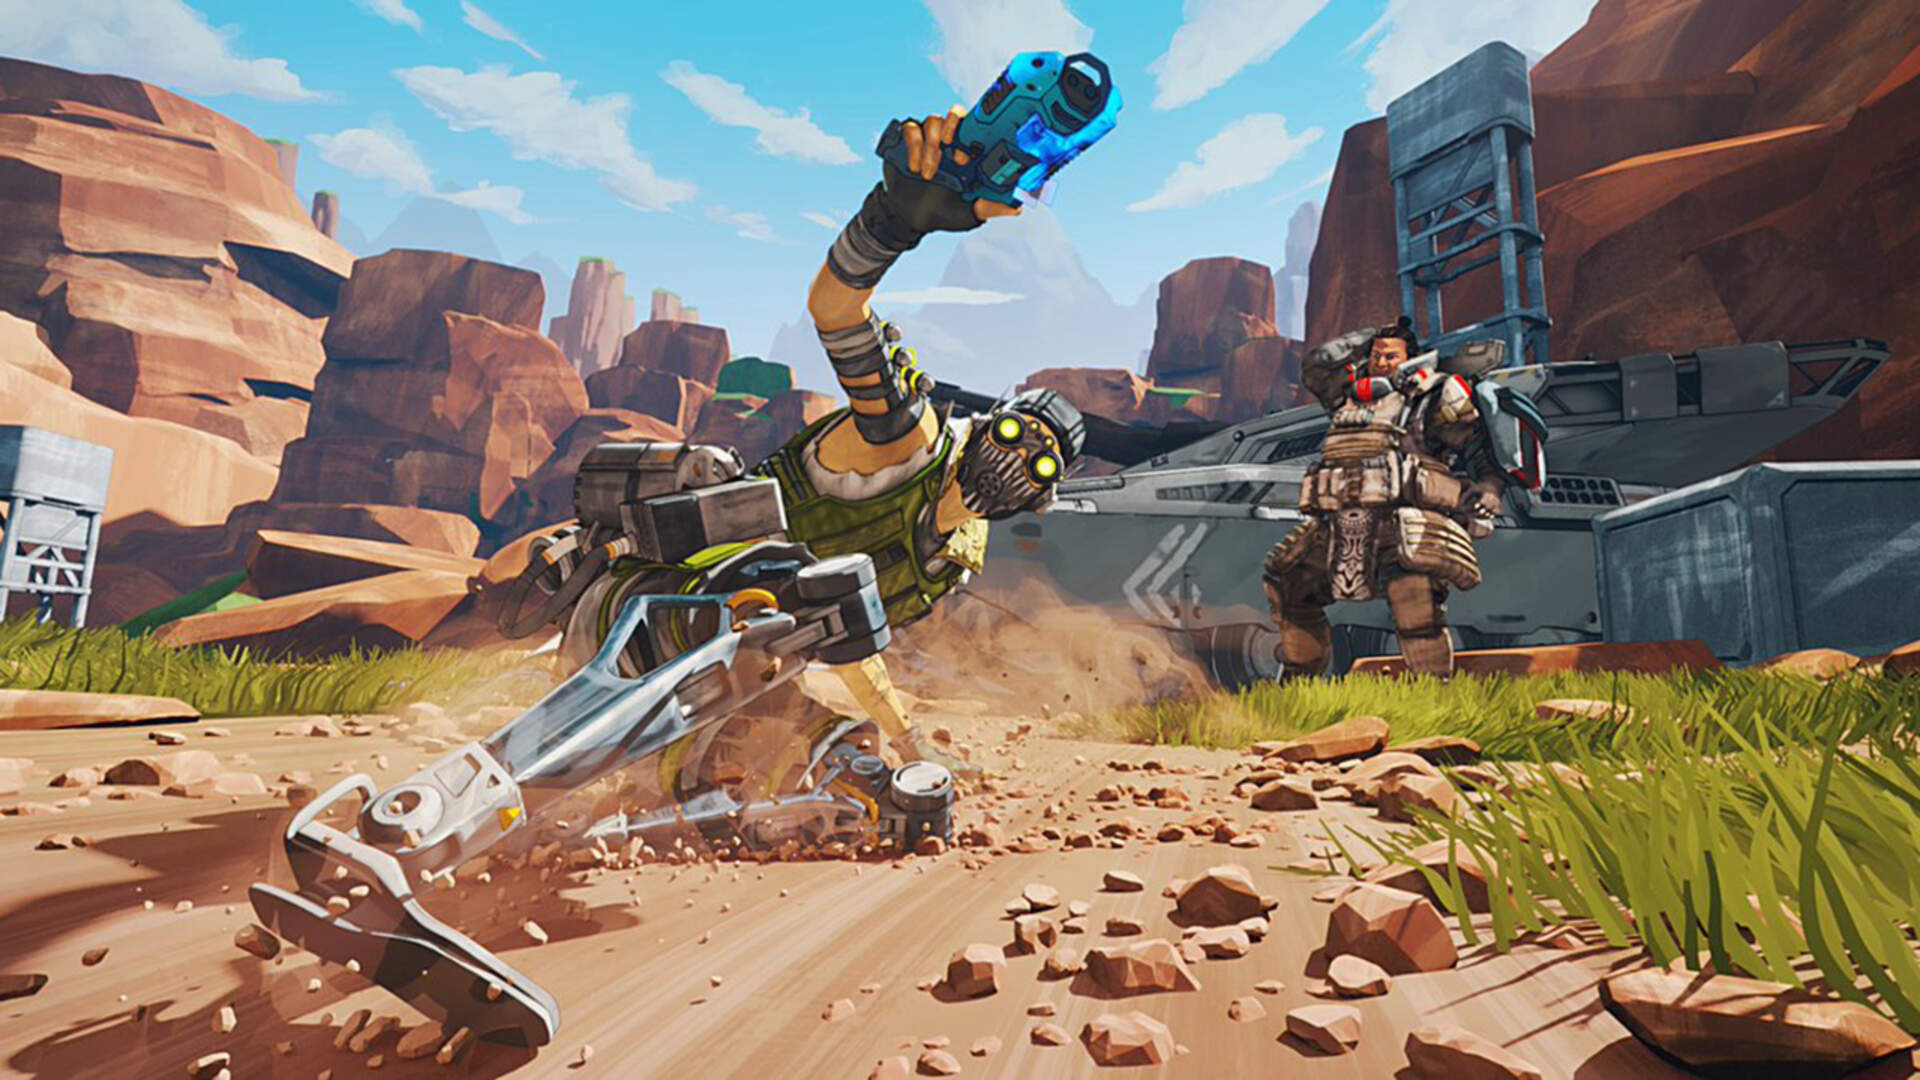 ESPN Postpones Apex Legends Broadcast in Wake of Shootings